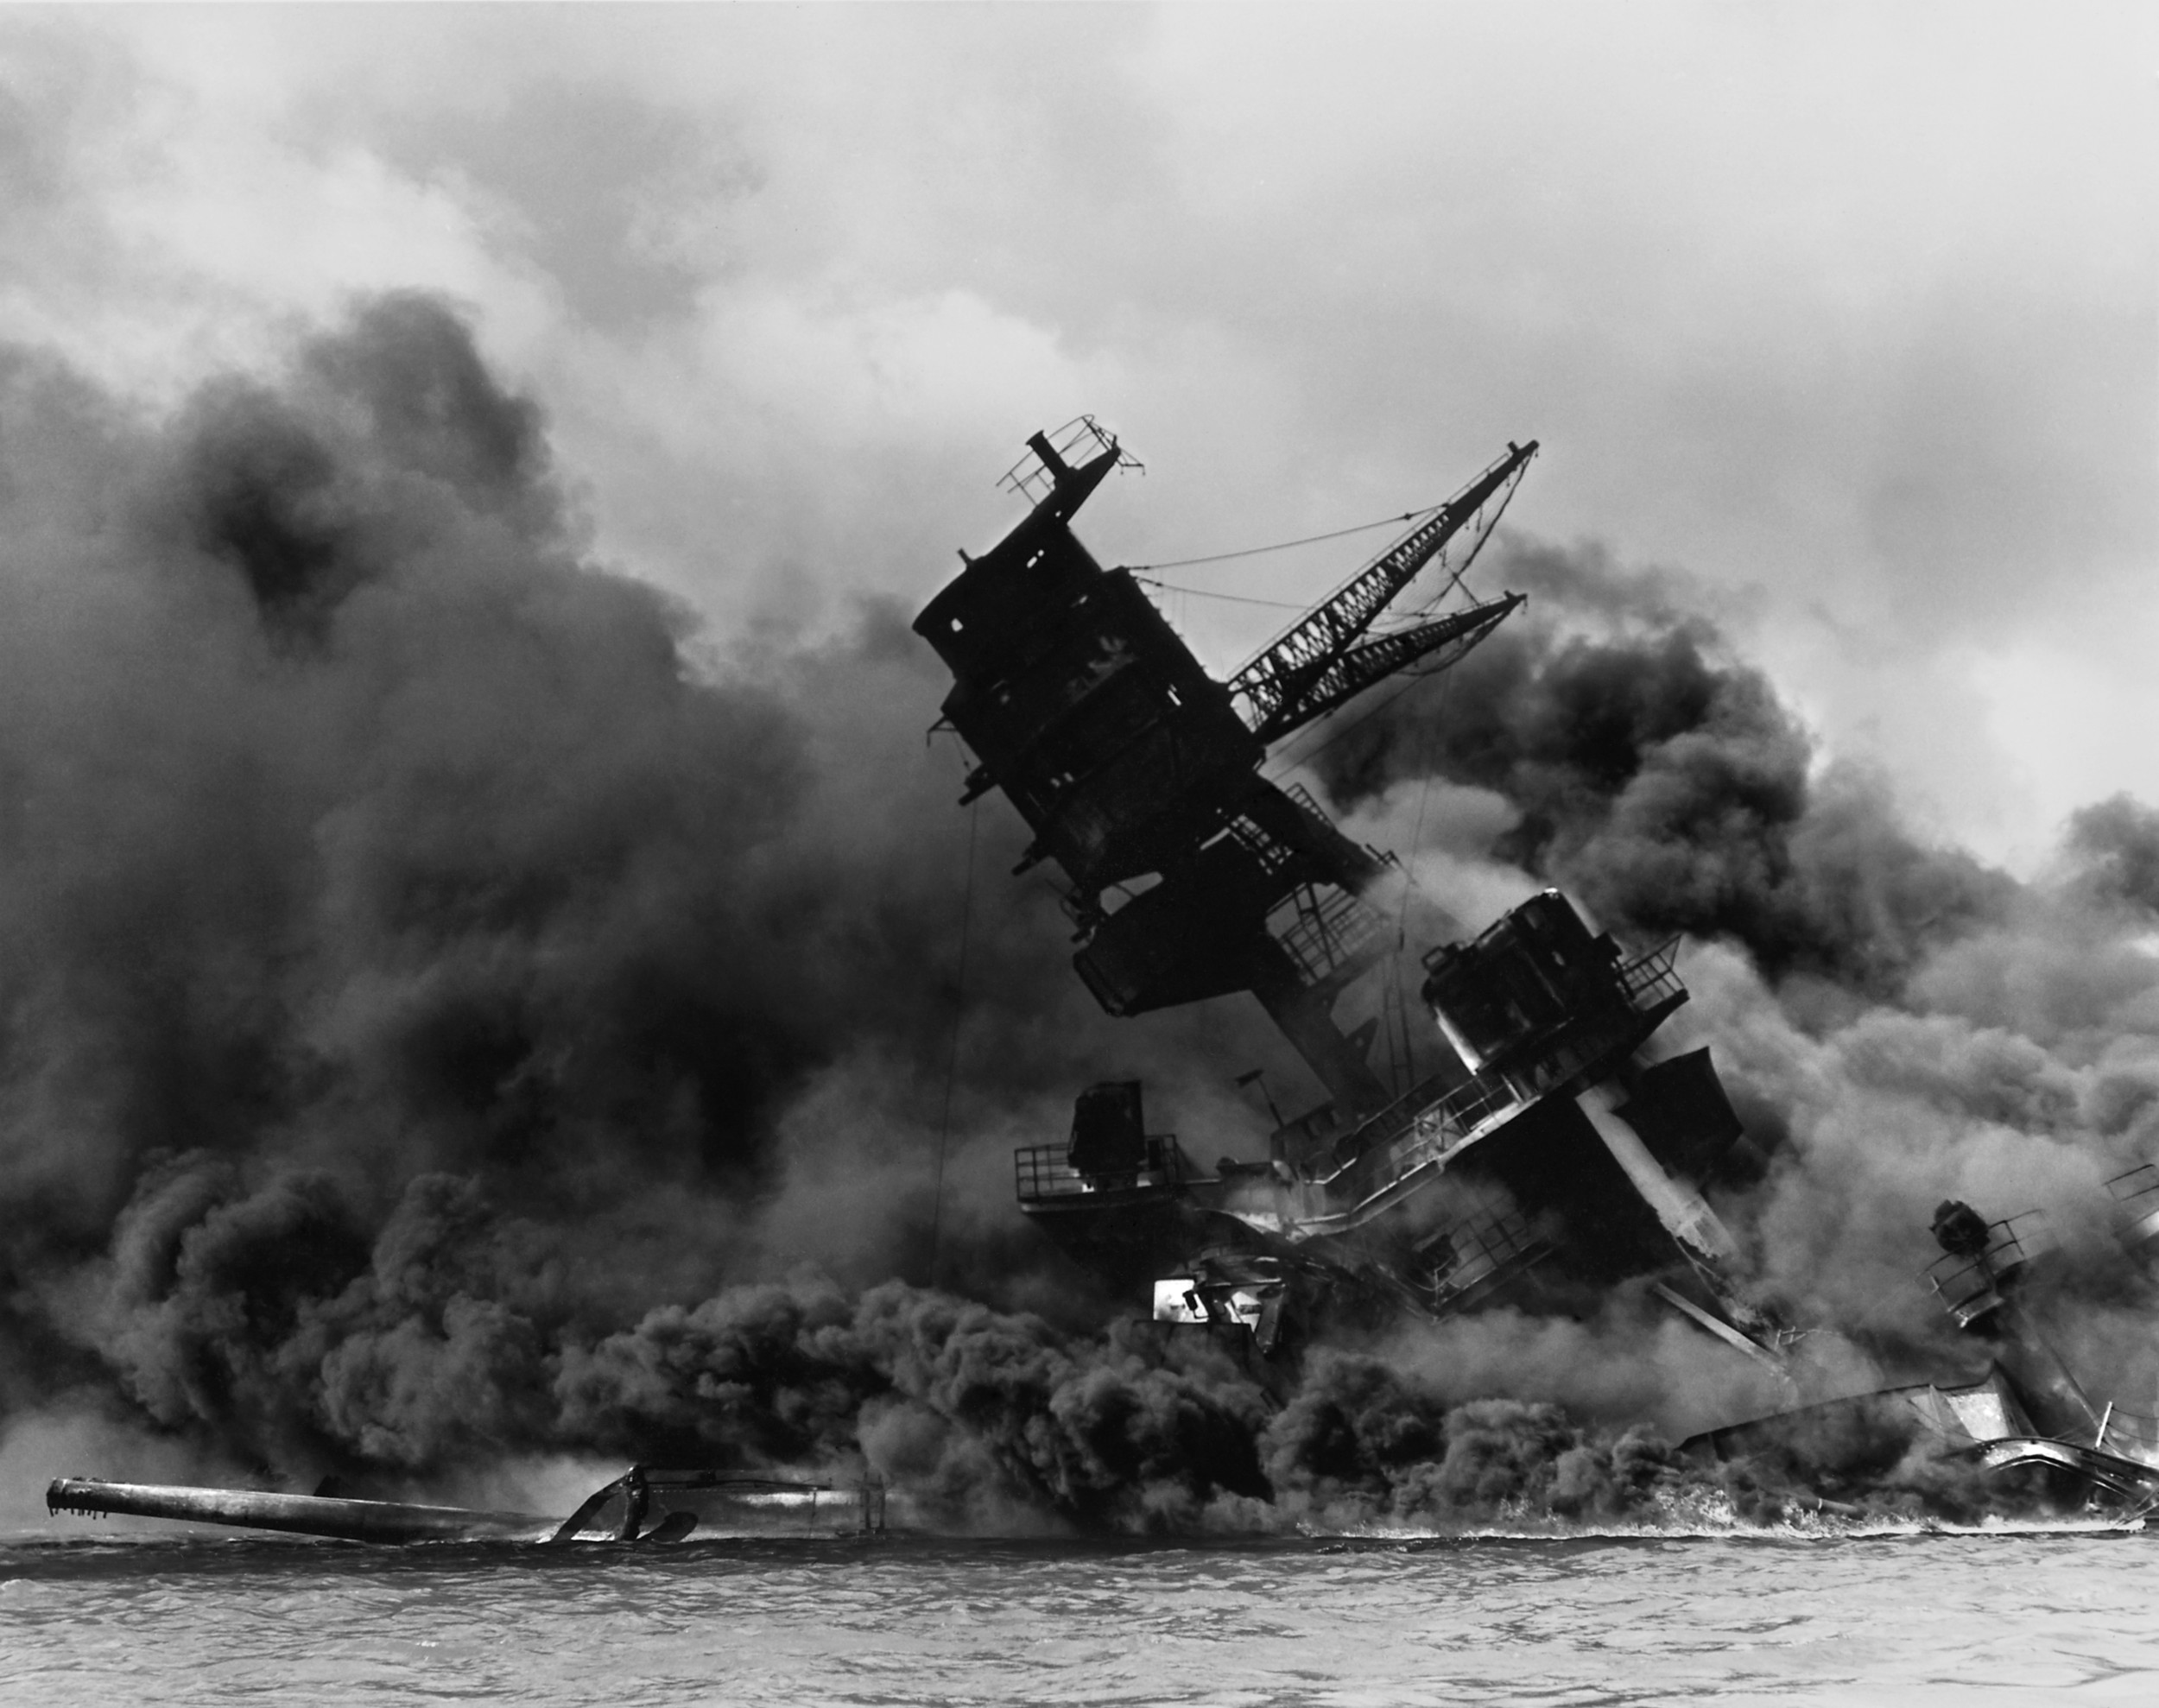 The USS Arizona burning after the Japanese attacked Pearl Harbor in Hawaii